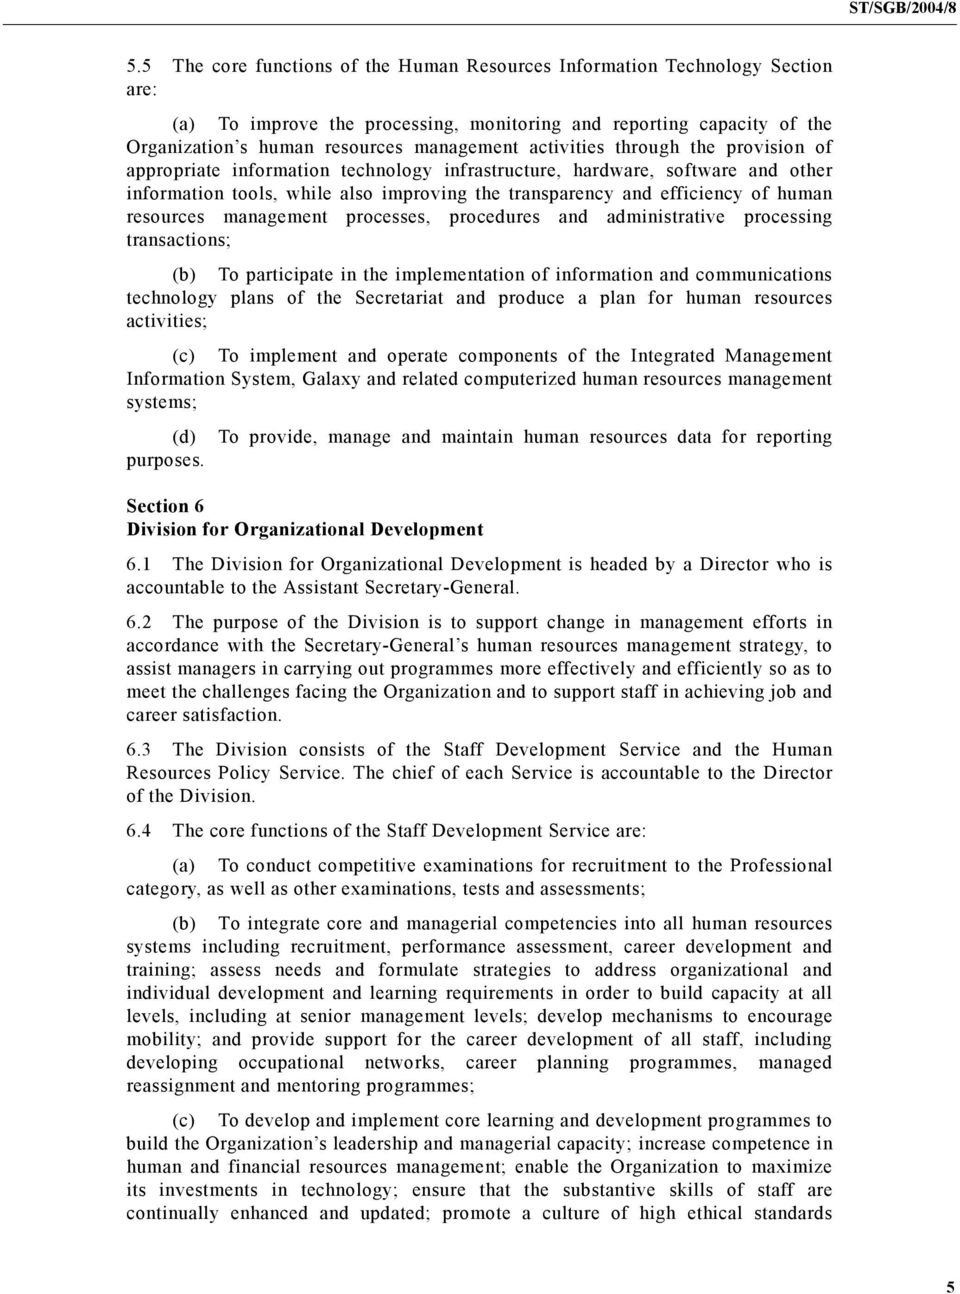 resources management processes, procedures and administrative processing transactions; (b) To participate in the implementation of information and communications technology plans of the Secretariat